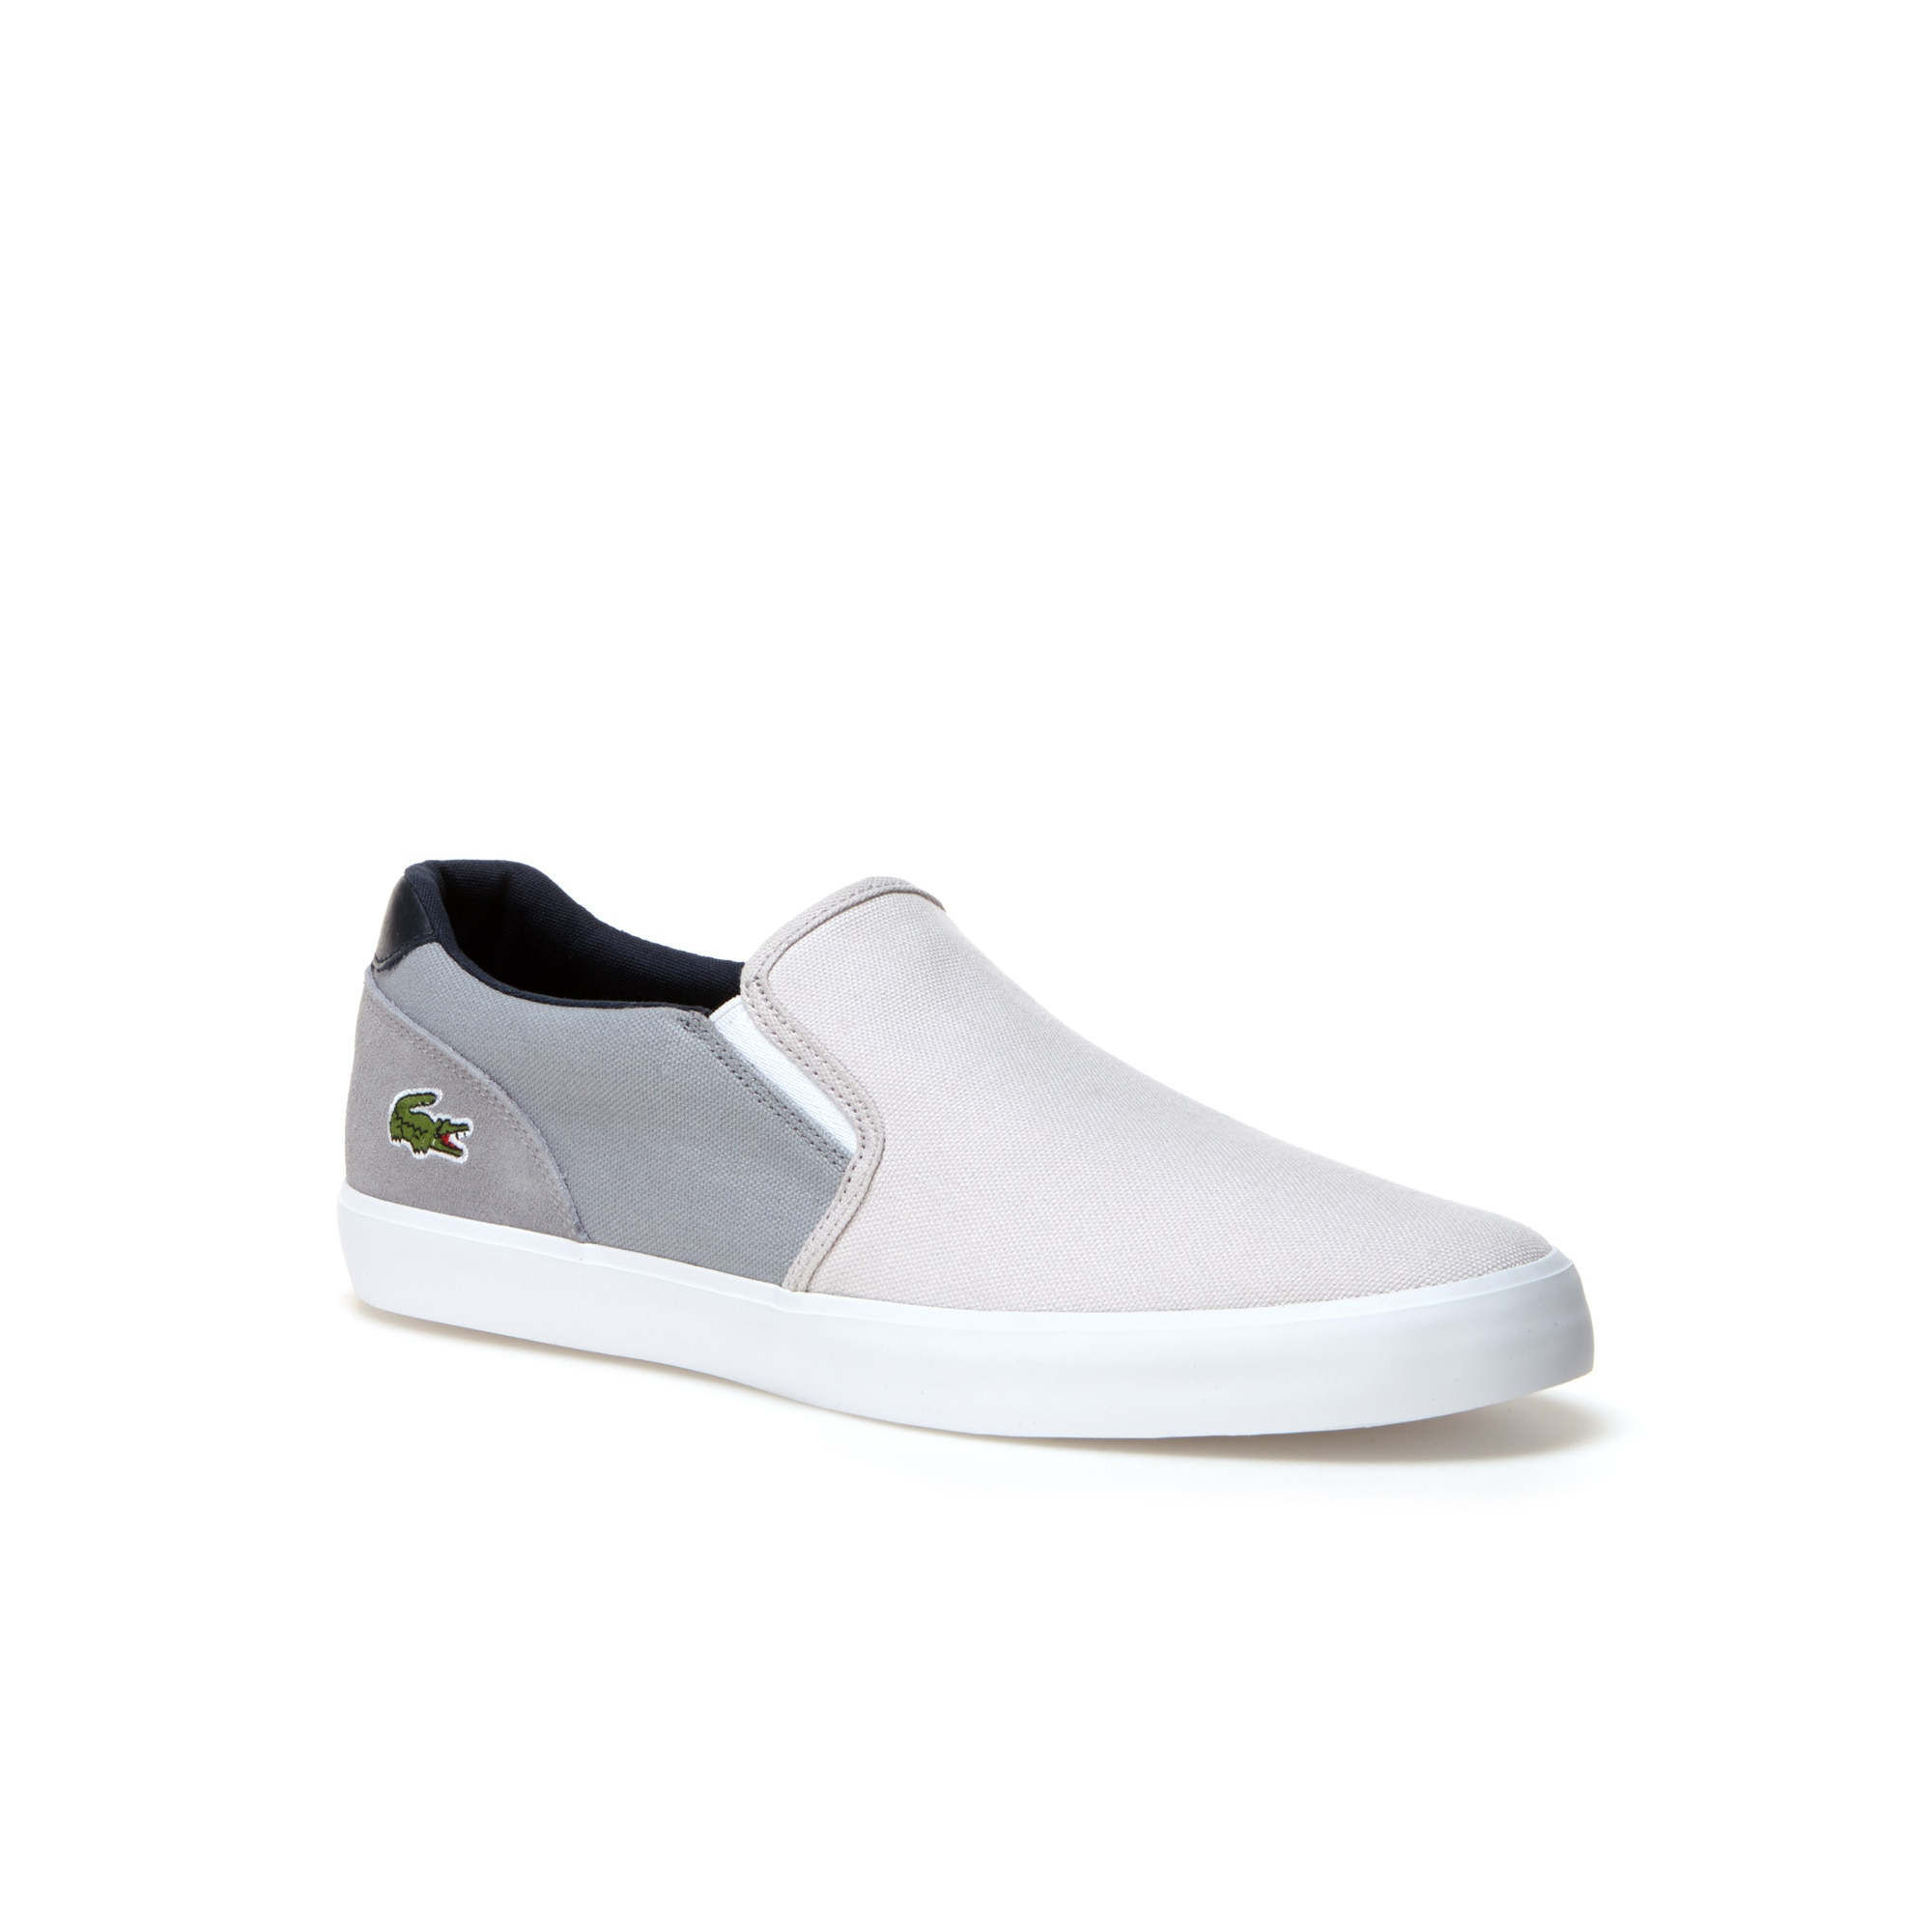 Men's Jouer Colorblock Canvas And Leather Slip-Ons